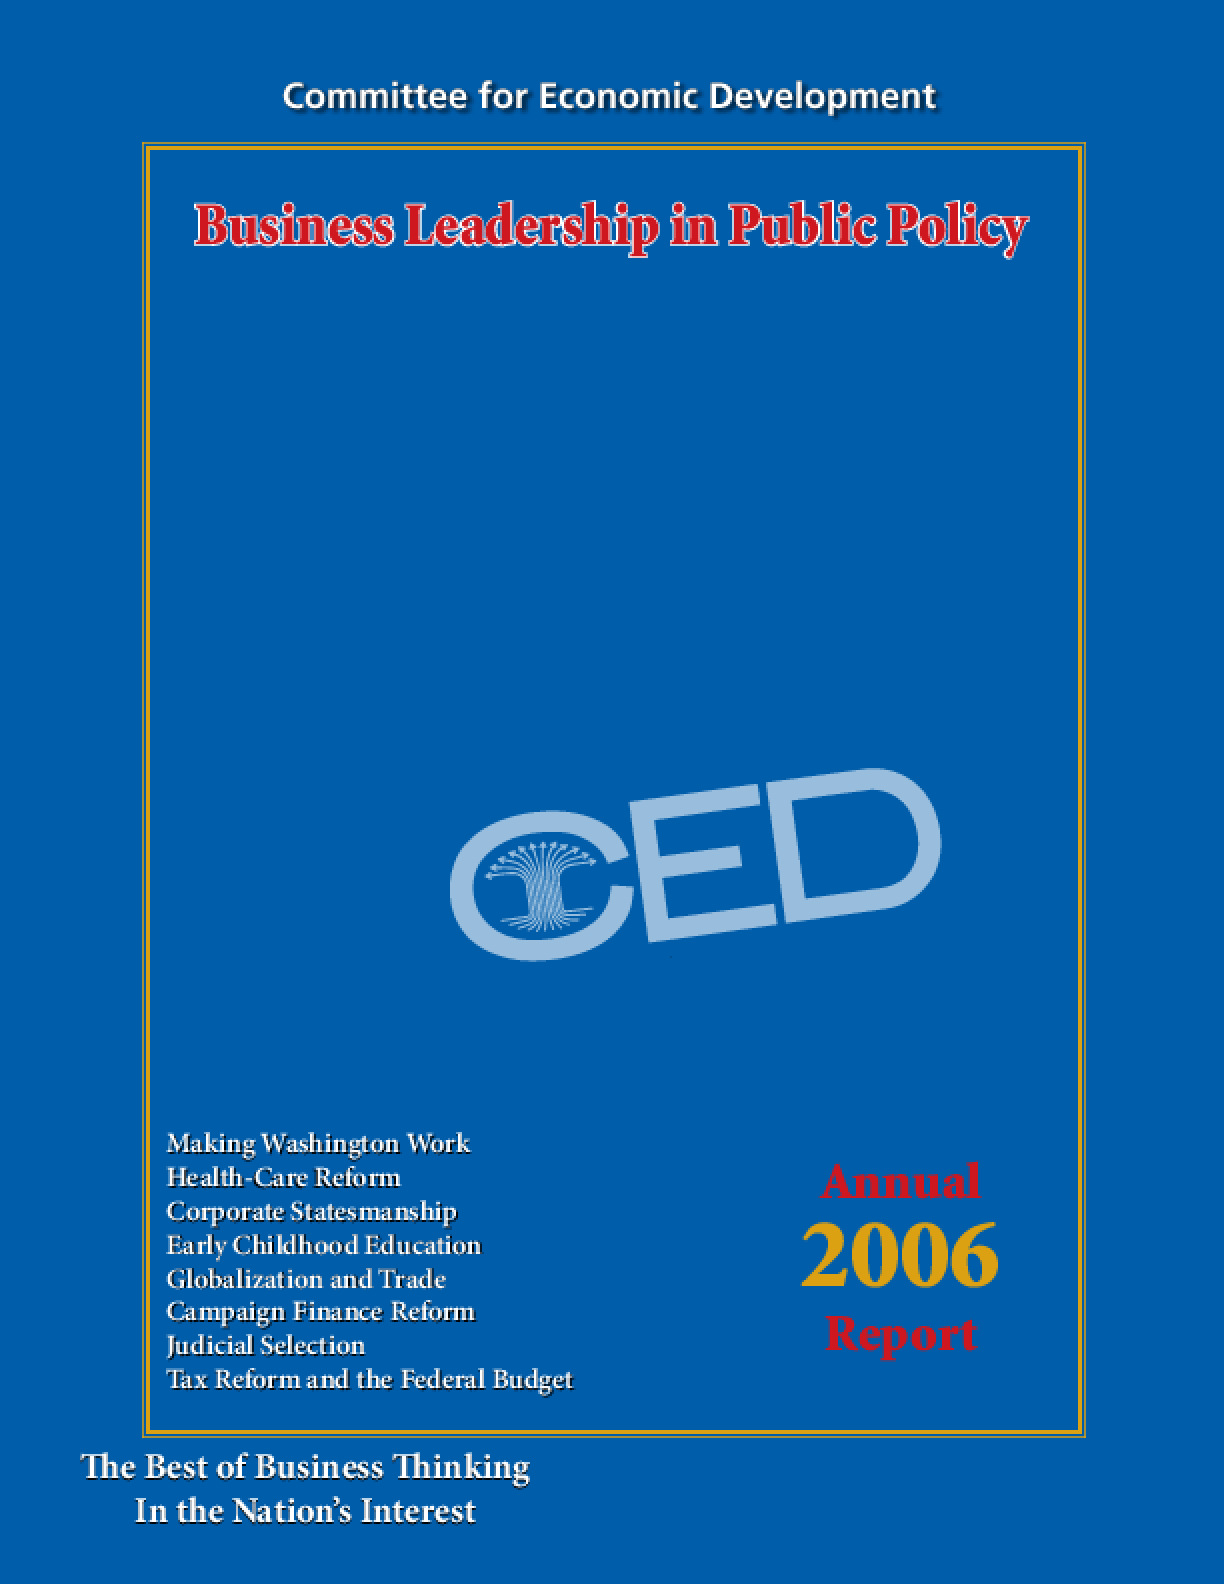 CED's 2006 Annual Report